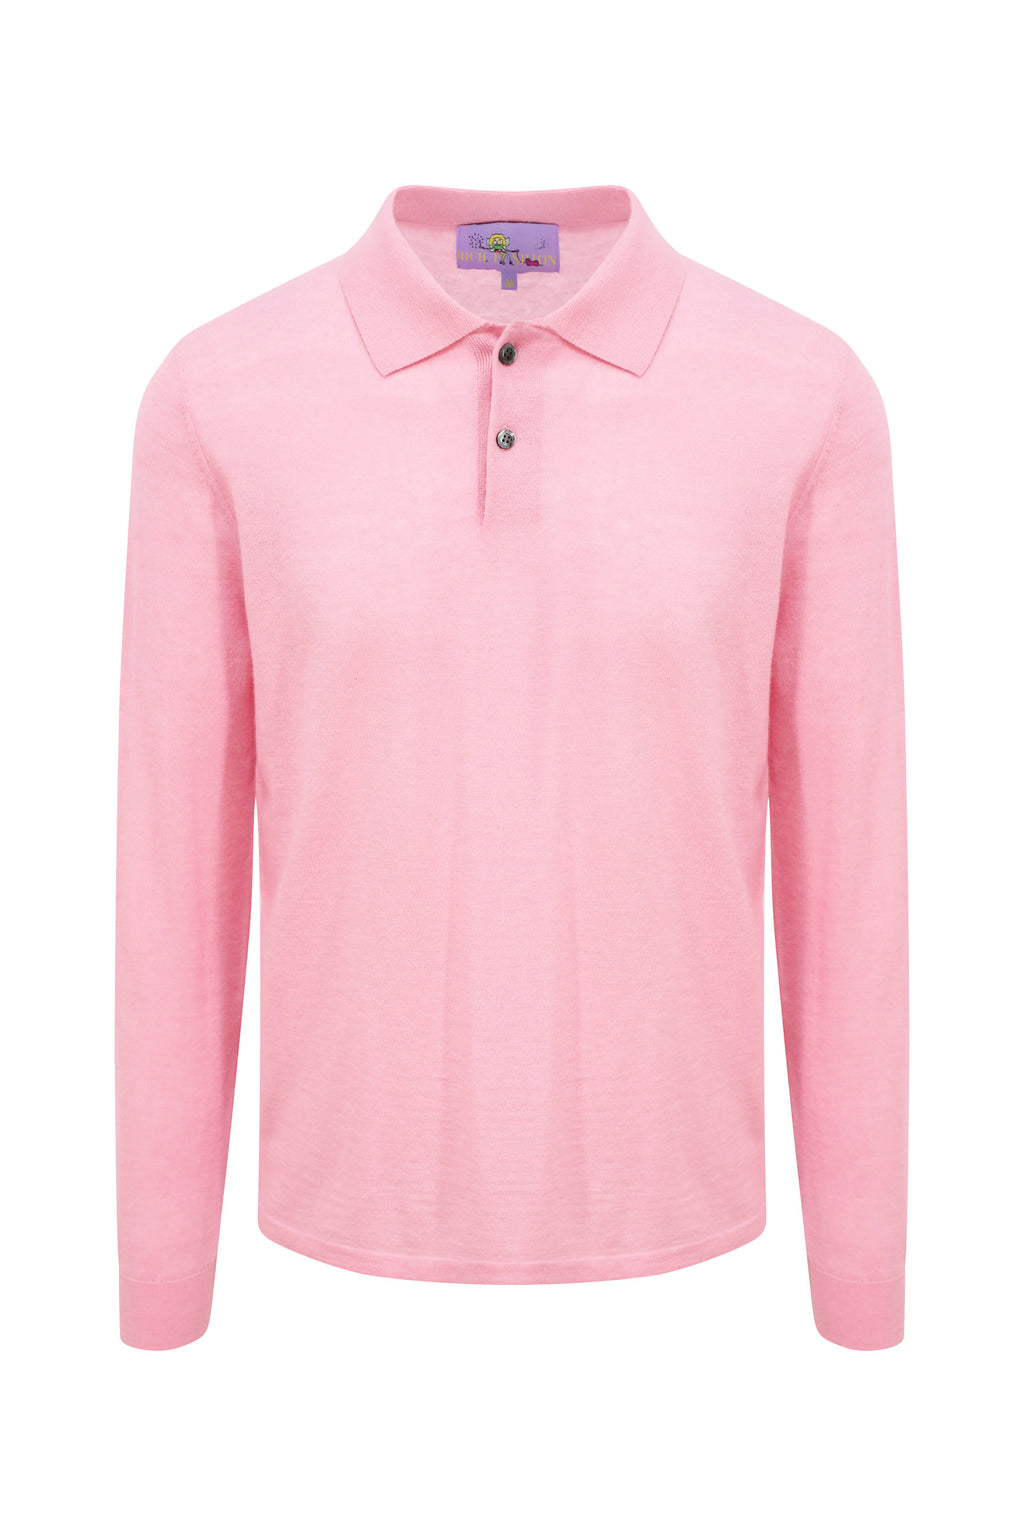 Pink Cashmere Long Sleeve Polo Shirt